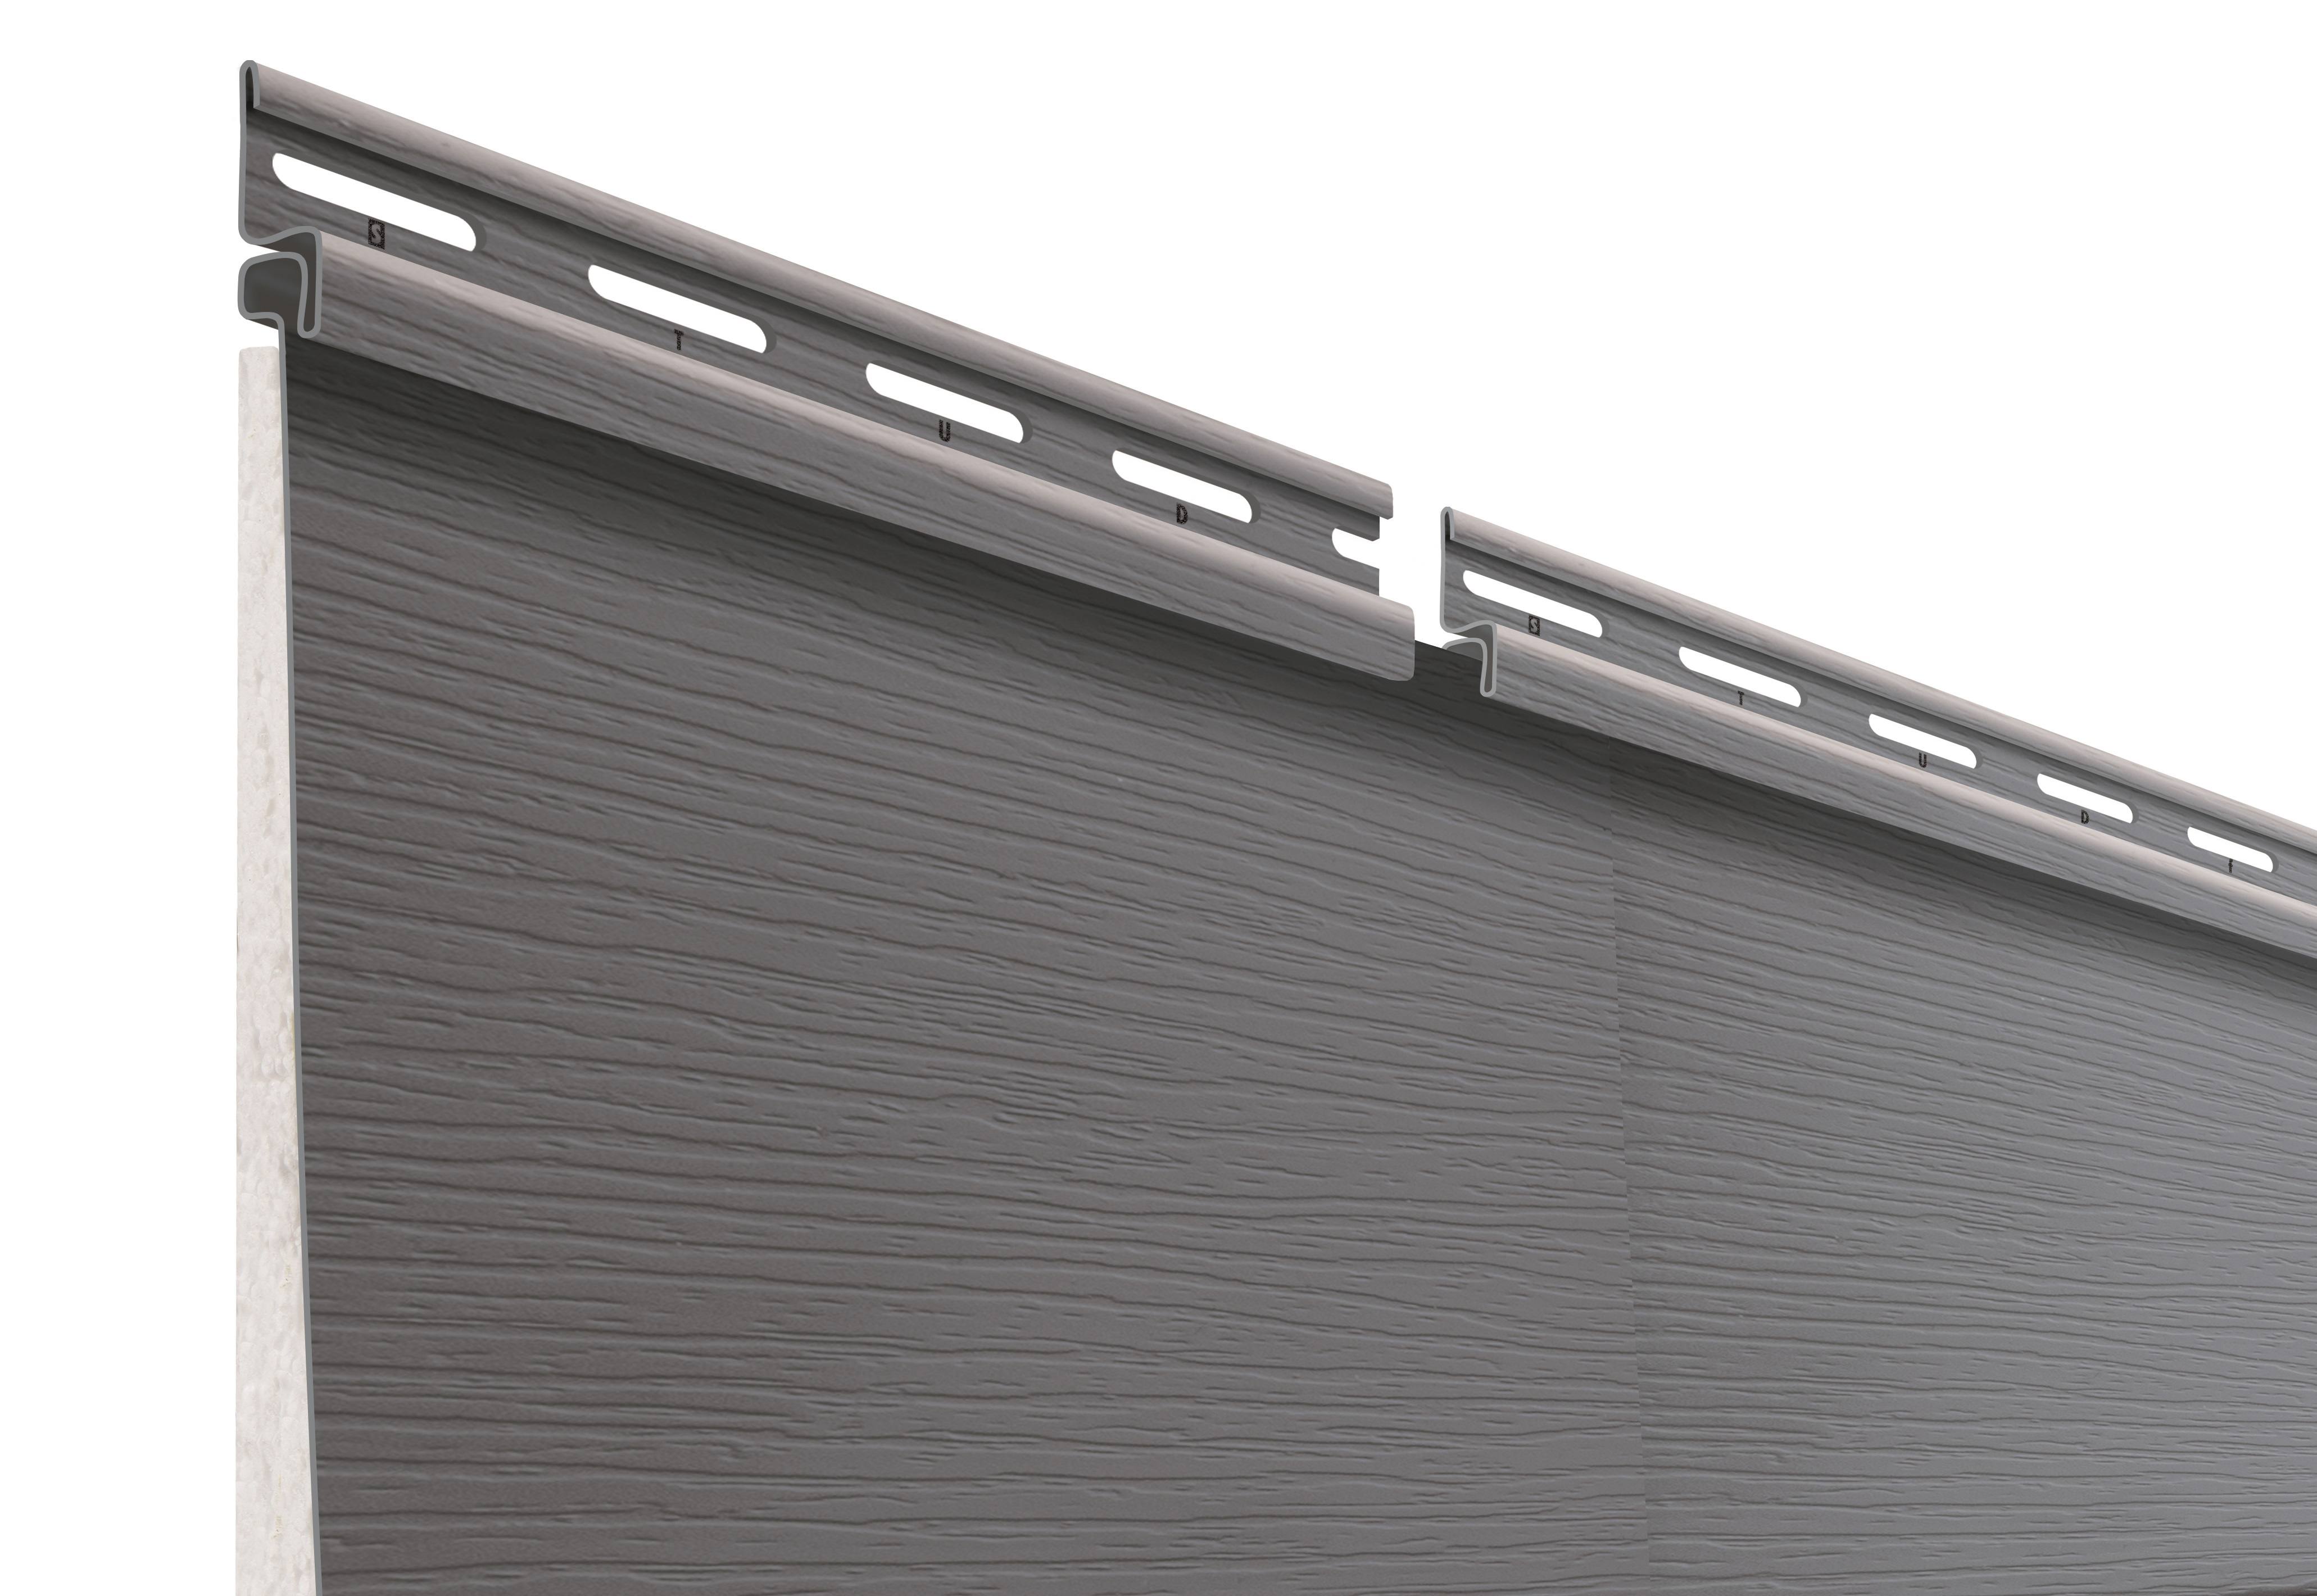 Certainteed Announces Availability Of New Certaplank Reinforced Siding Business Wire